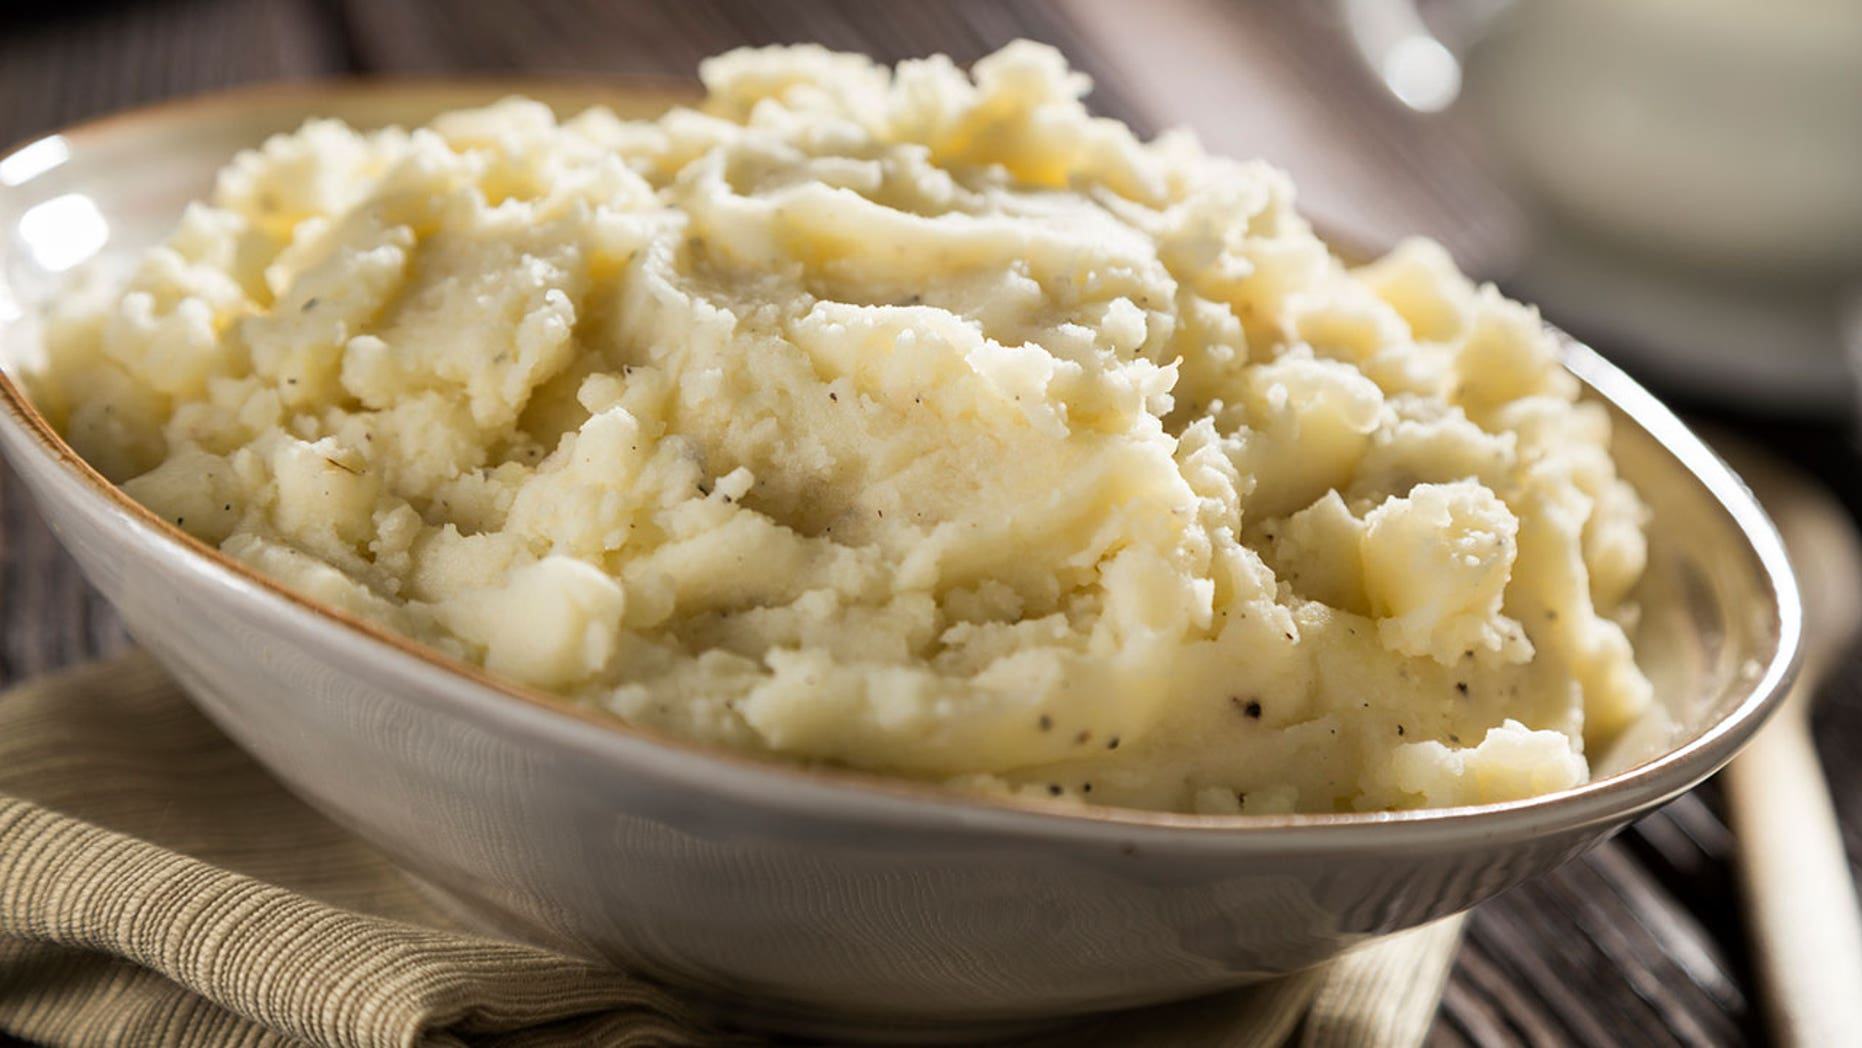 Don't settle for mashed potatoes made with sub-par spuds.